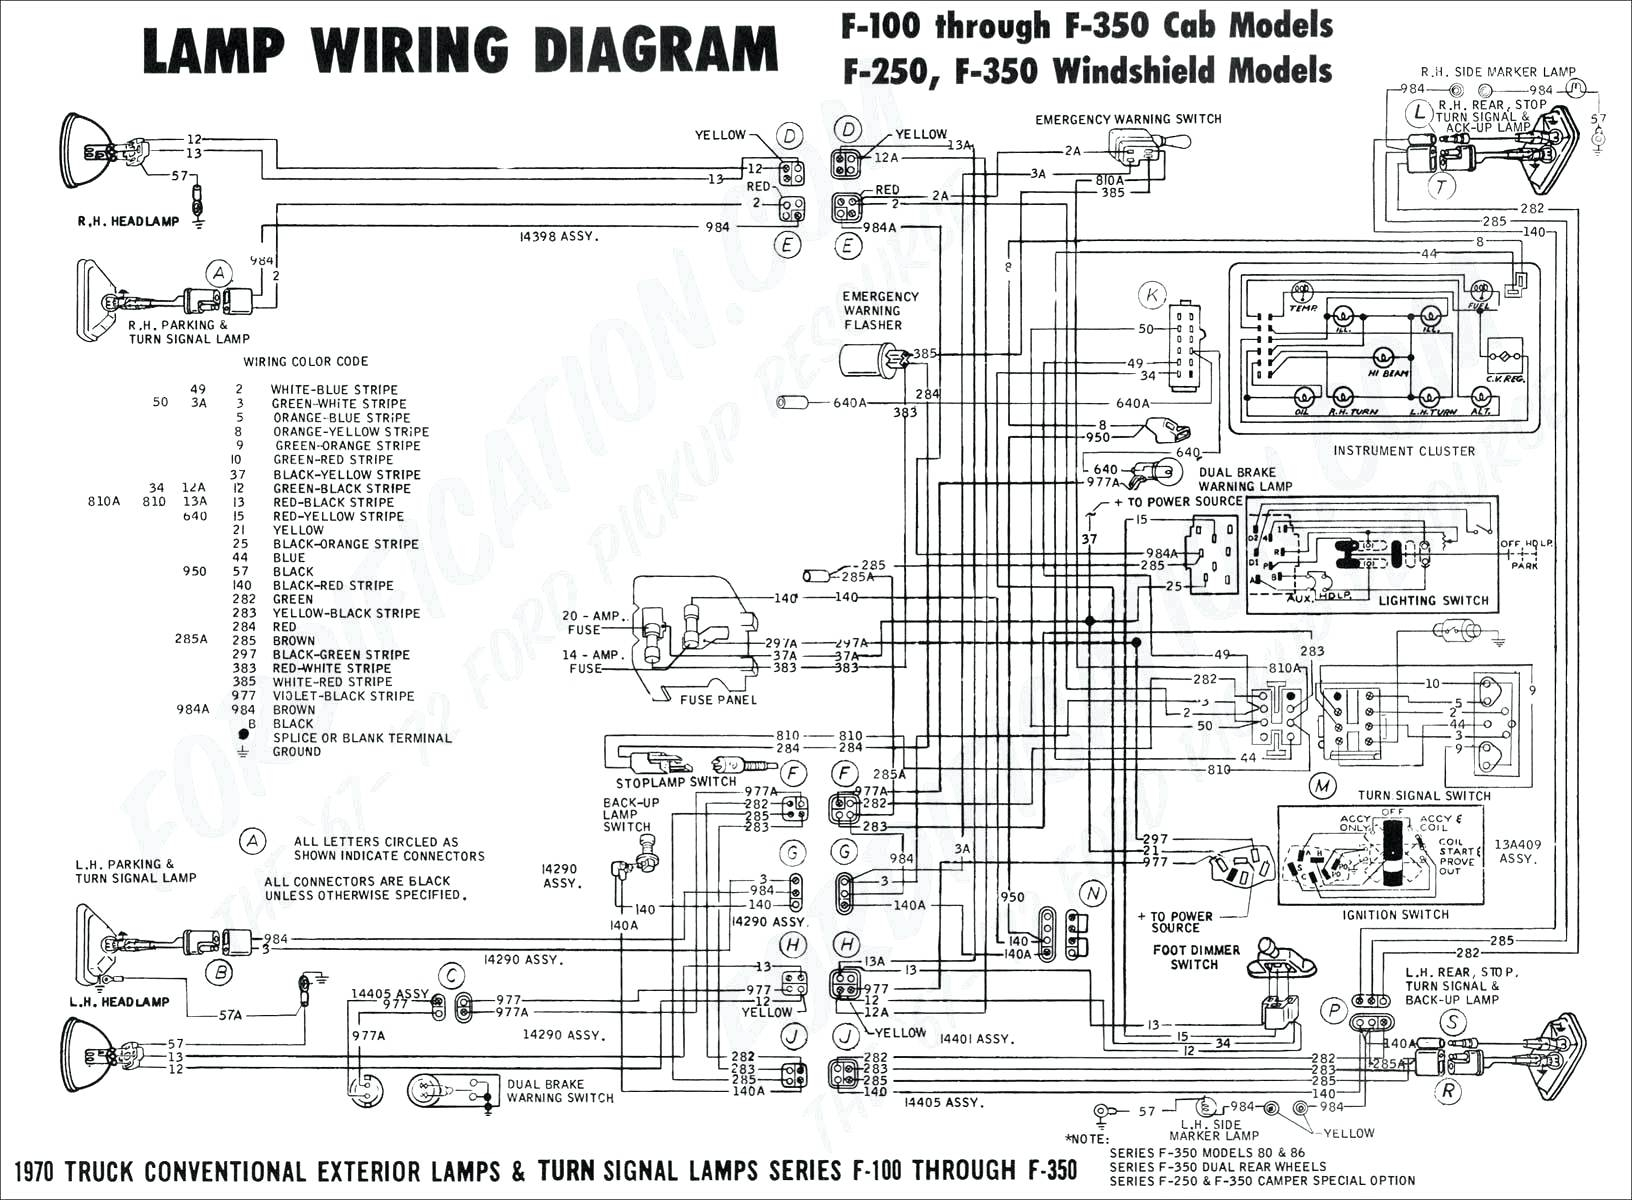 ford f250 trailer wiring harness diagram | free wiring diagram 1993 ford f 250 wiring diagram 1962 ford f 250 circuit diagram